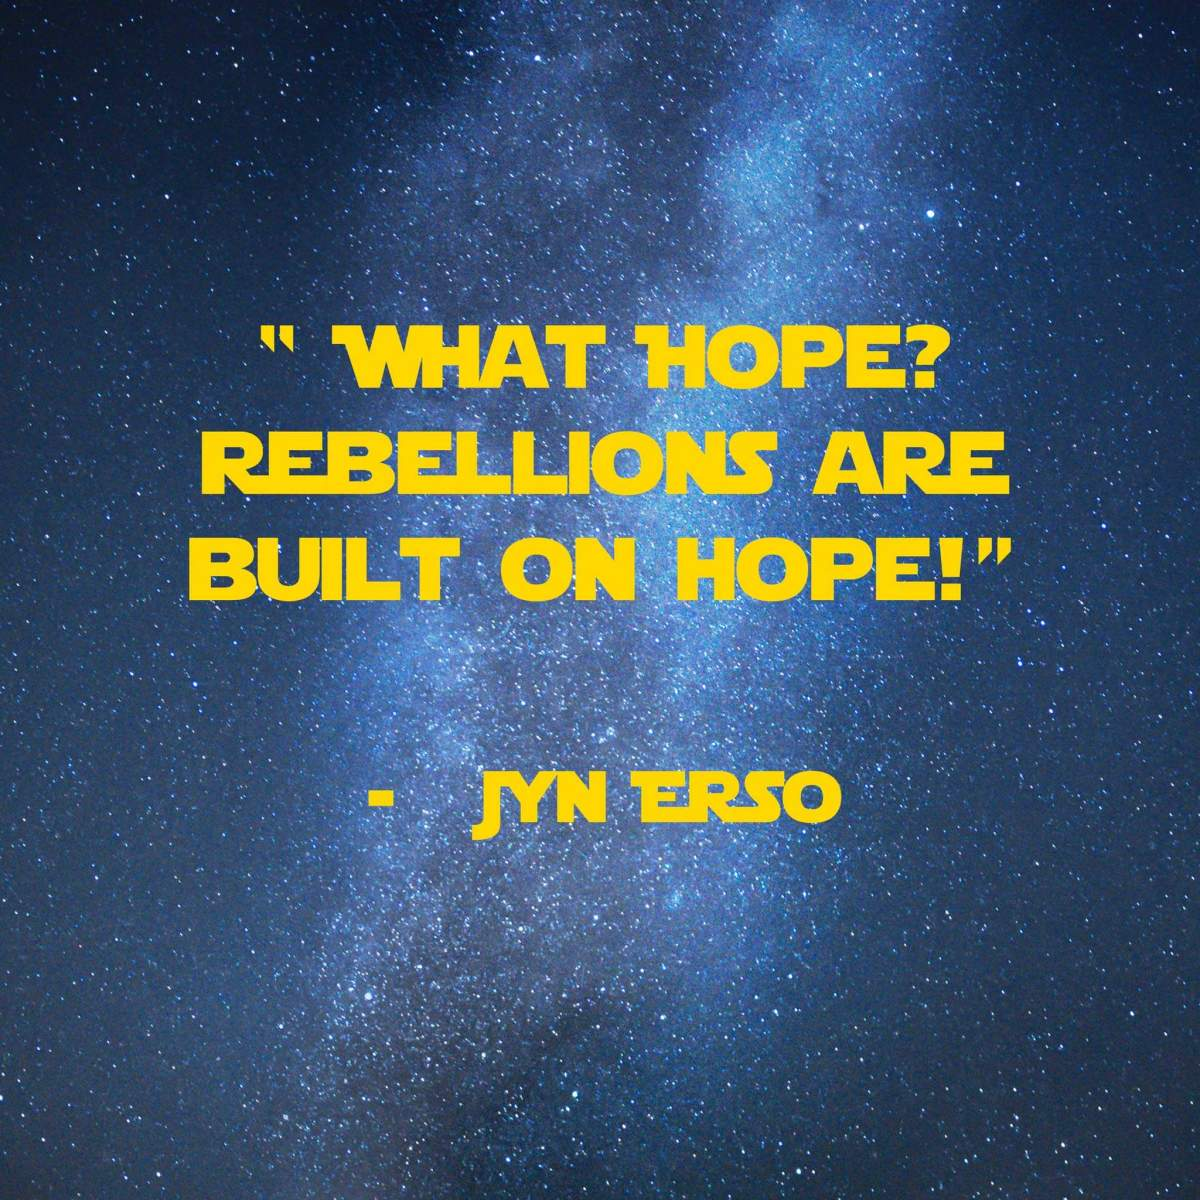 What Hope? Rebellions are built on hope! | 31 Memorable Star Wars Quotes for Geeks